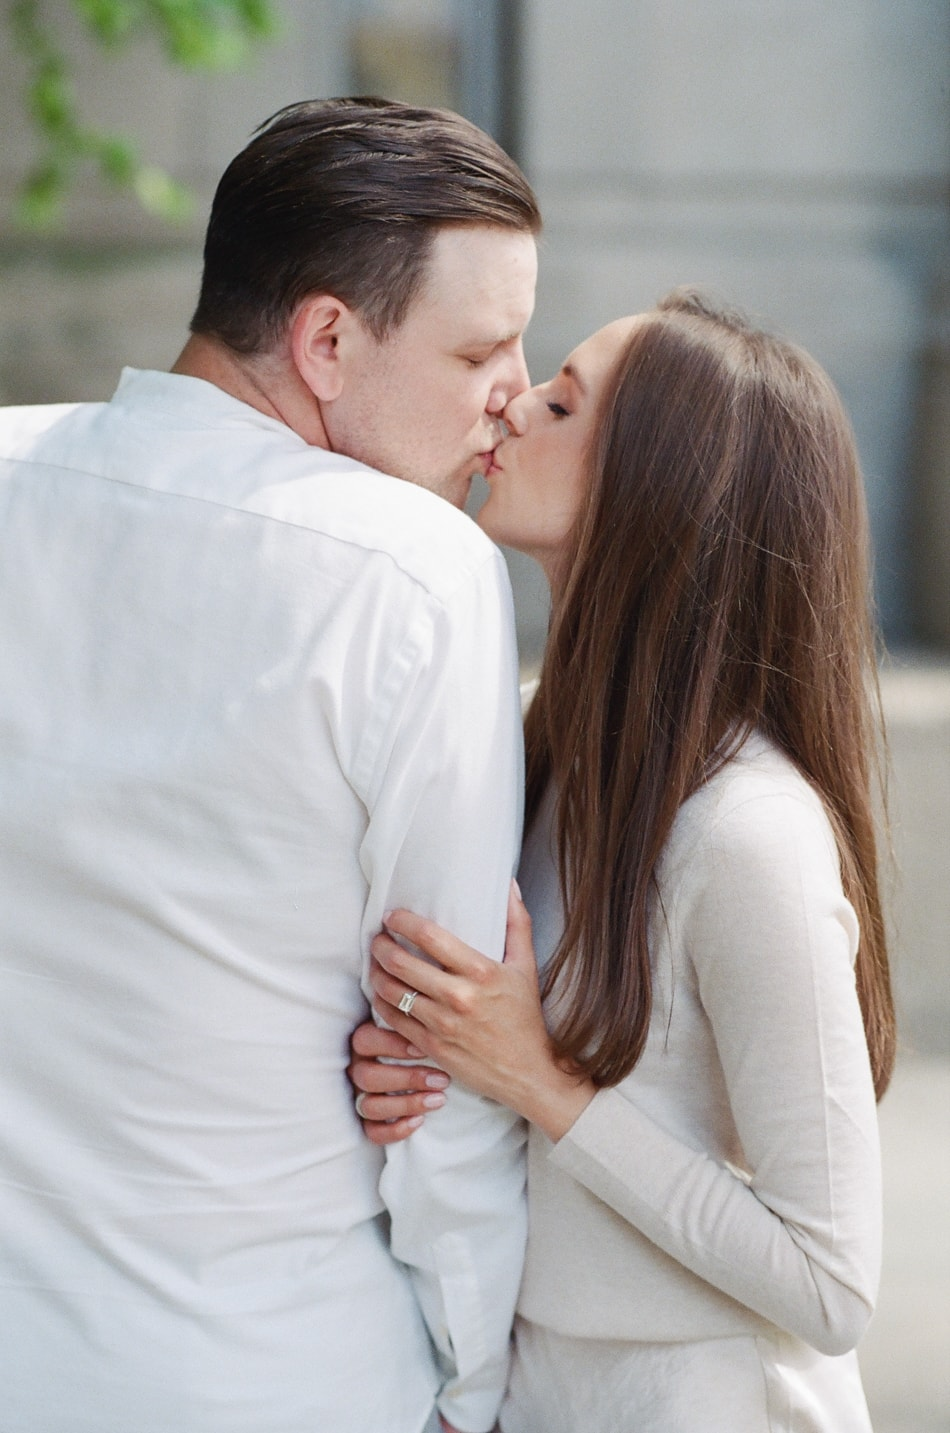 Bride and groom kissing each other at Chicago Riverwalk